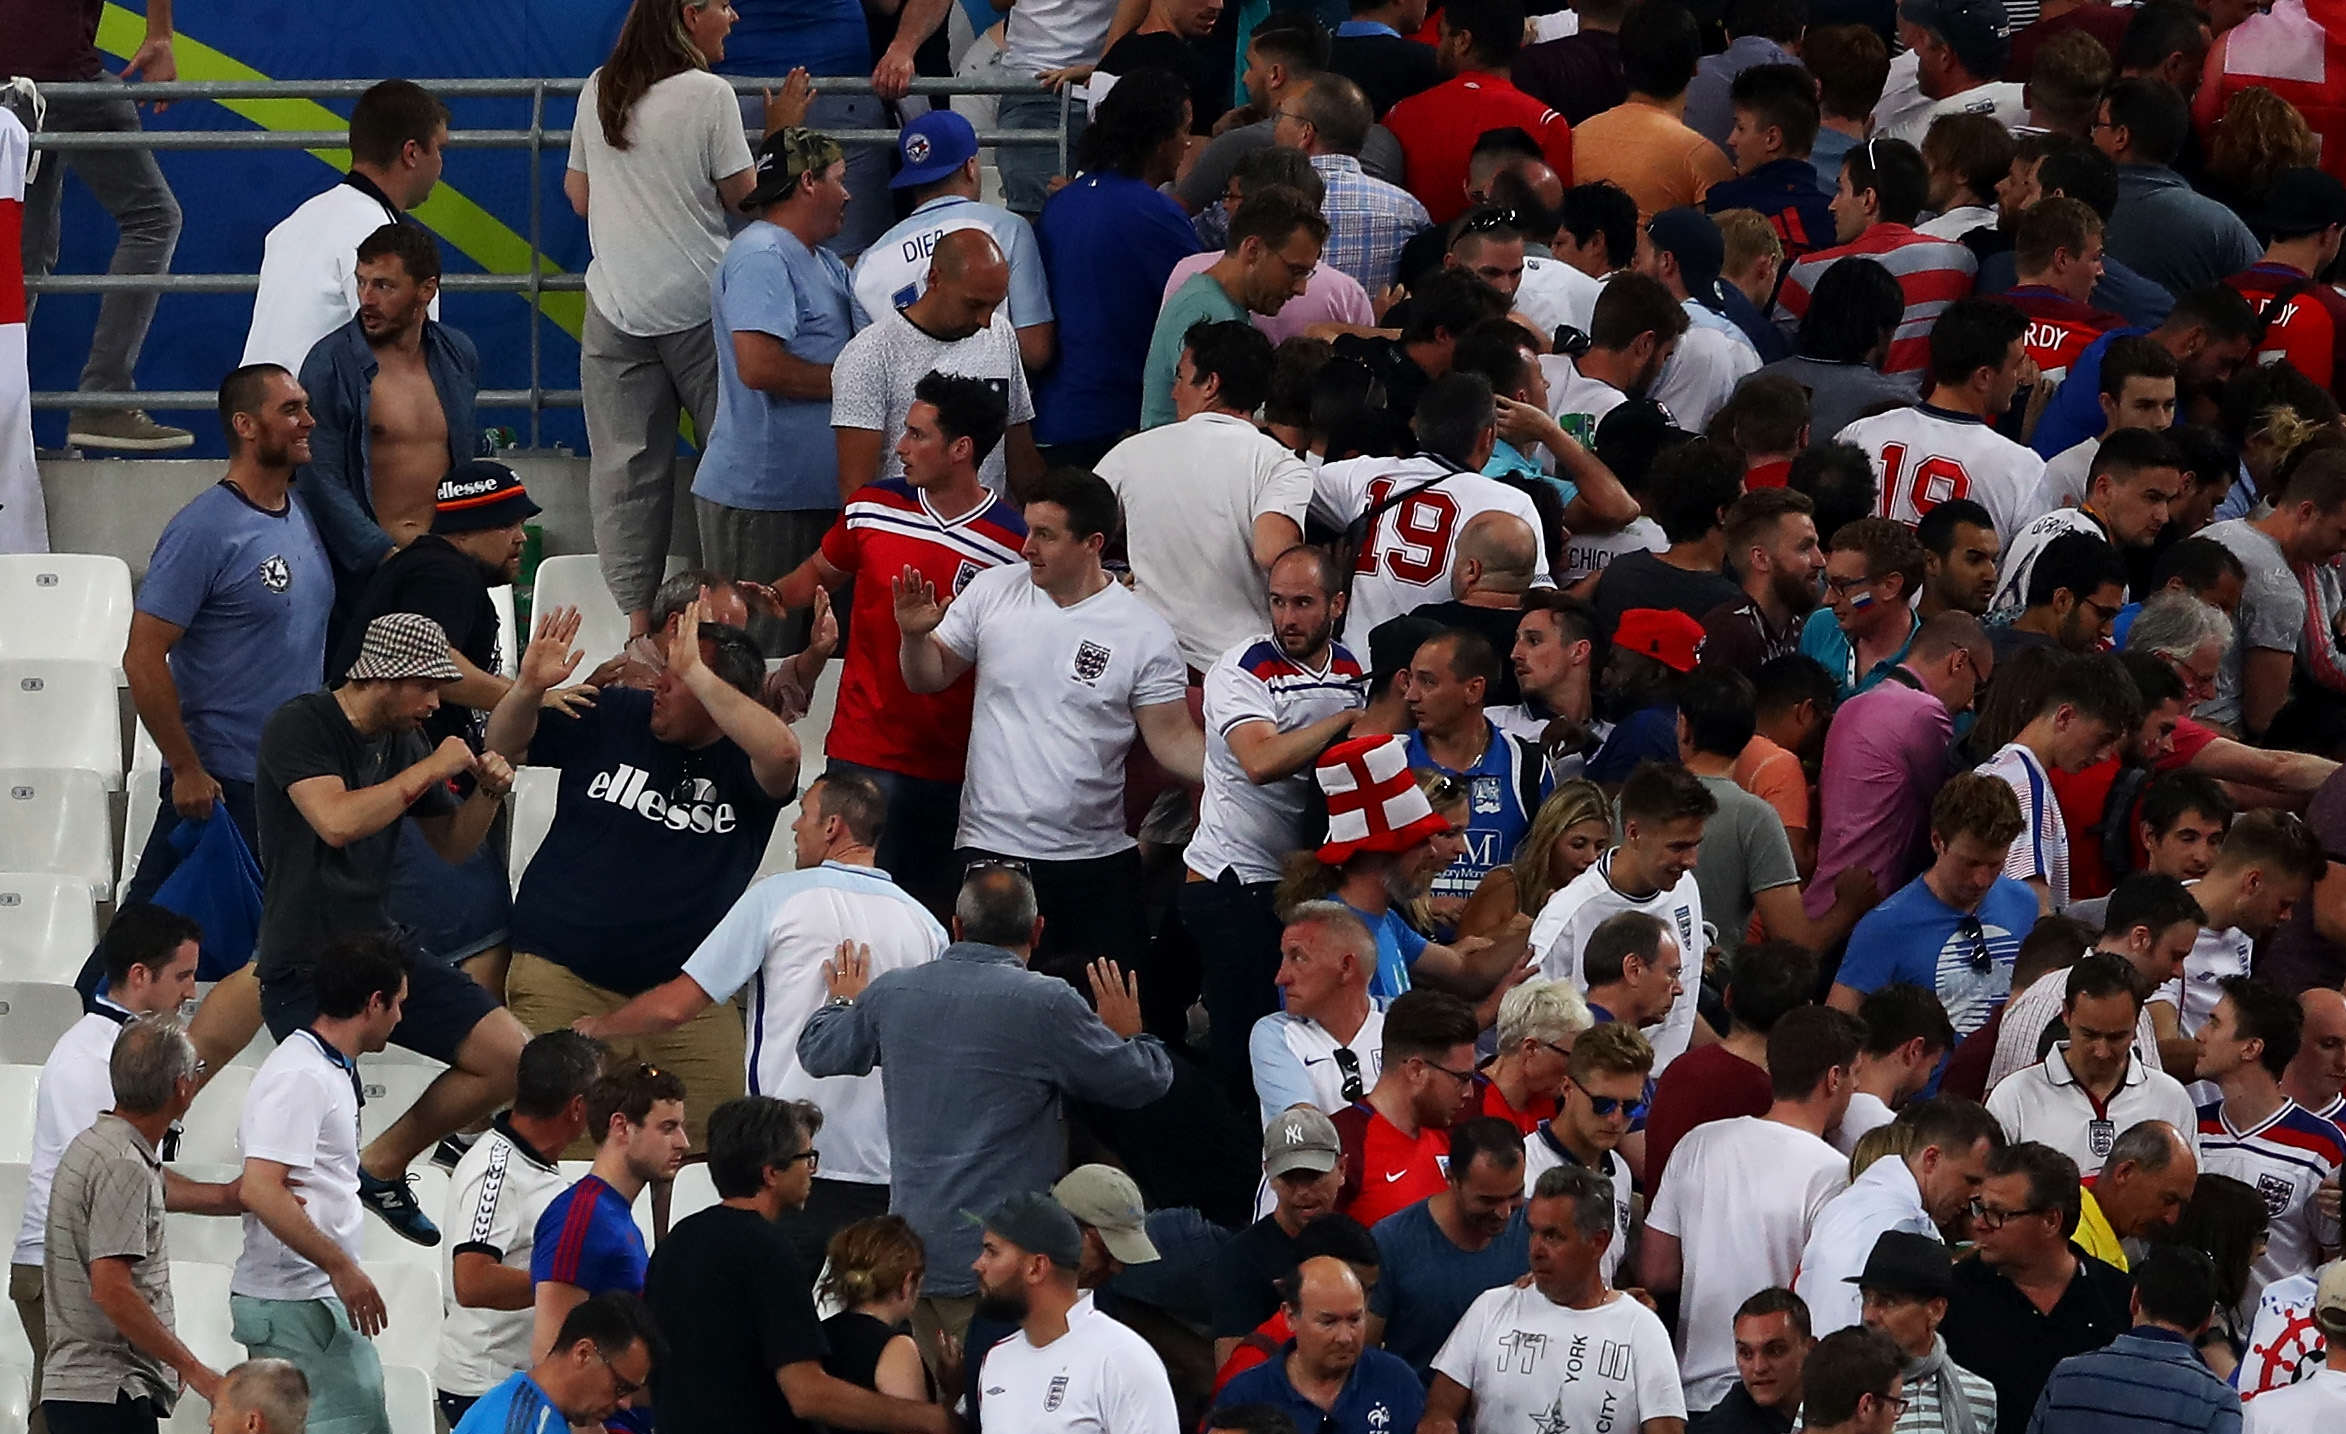 Shocking Footage Shows How Russian Hooligans Trained For Euros euro16fight33 2 1